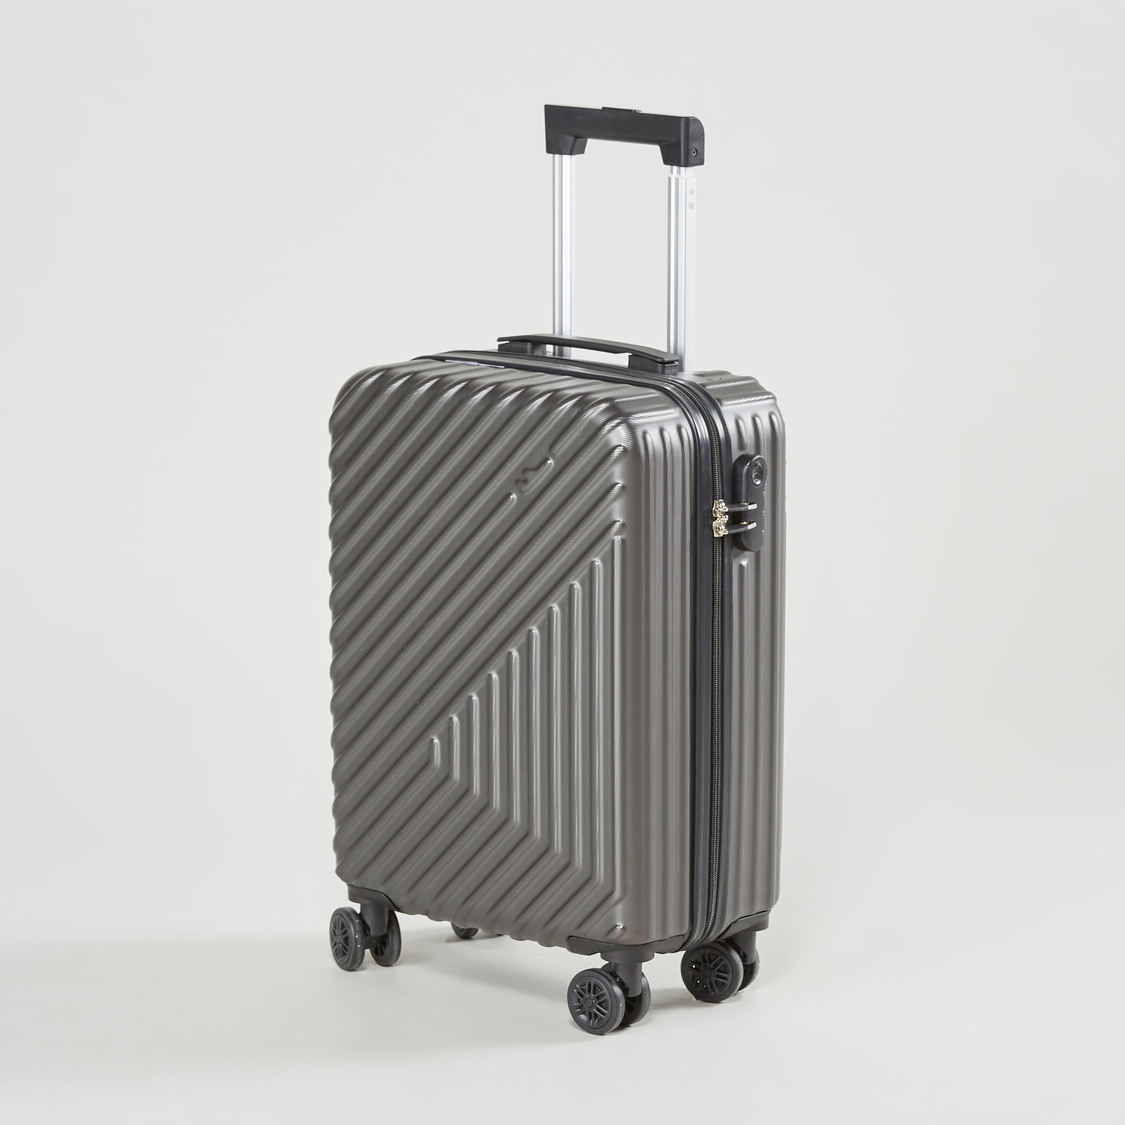 Textured Hard Case Trolley Bag with Swivel Wheels 37x56x22 cms